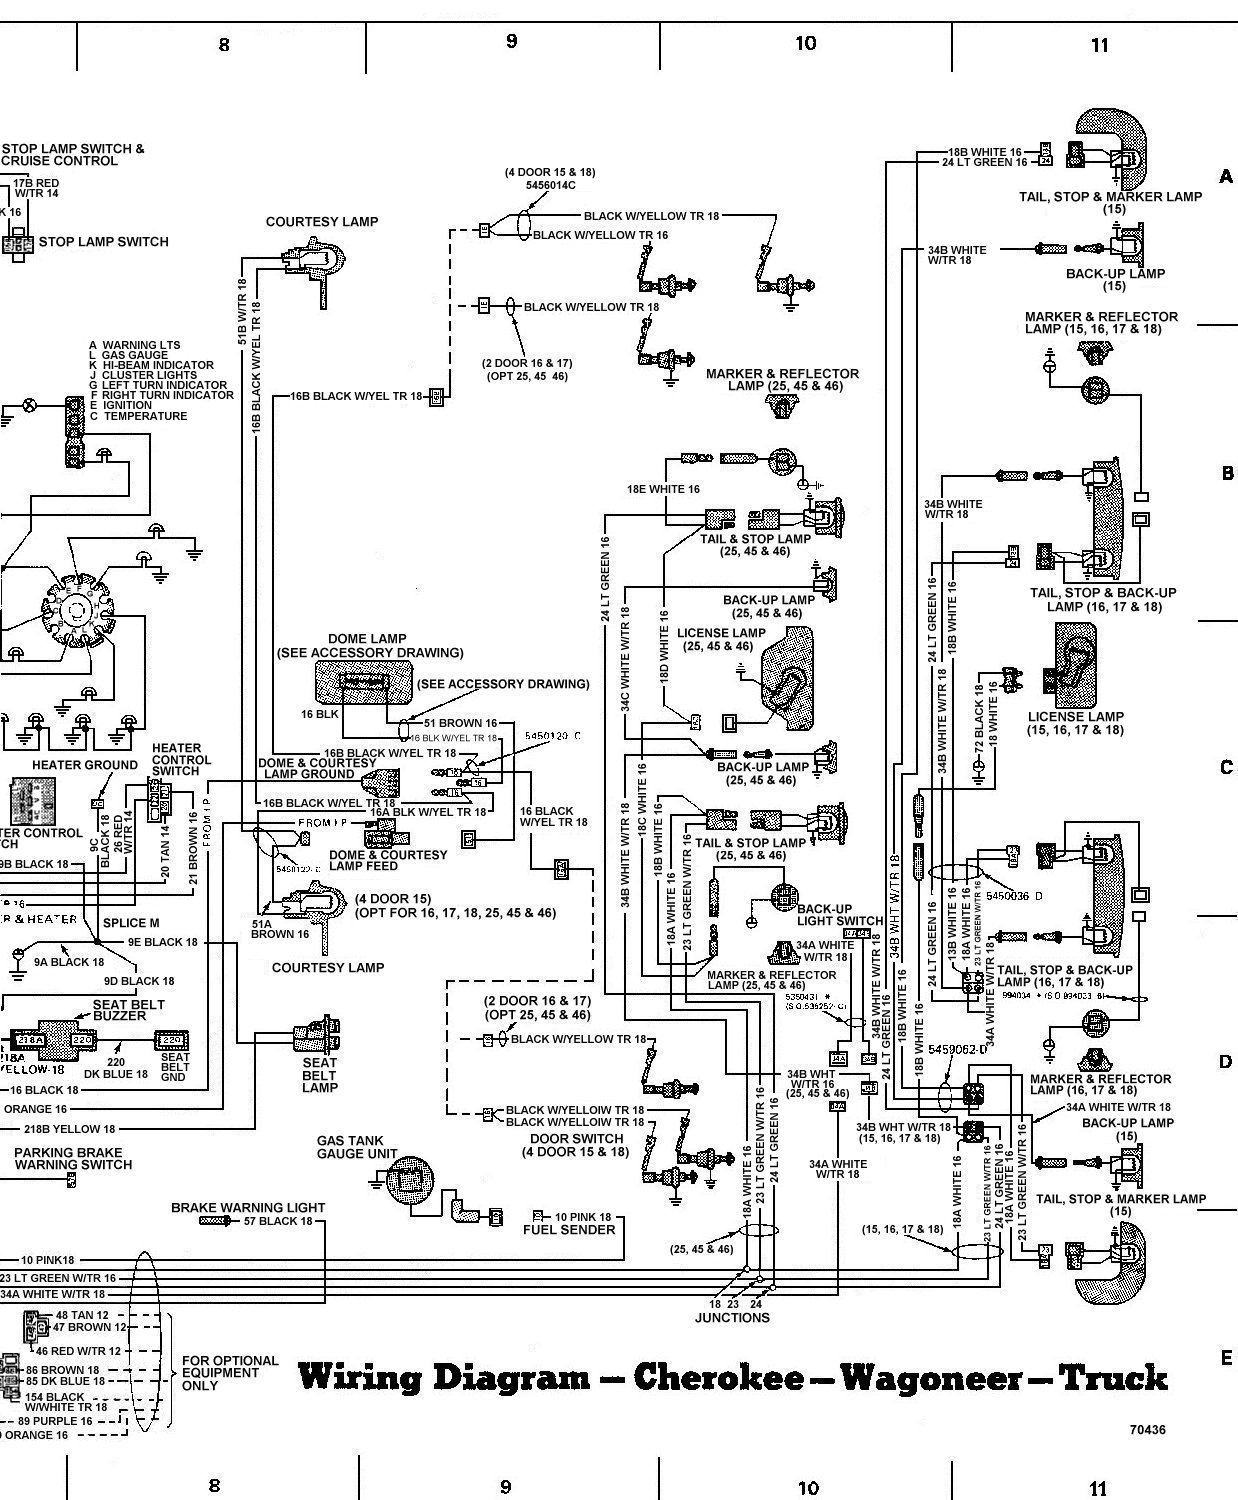 jeep cherokee ignition wiring diagram detailed schematics diagram rh mrskindsclass com wiring diagram for jeep tj subwoofer wiring diagram for jeep compass 2012